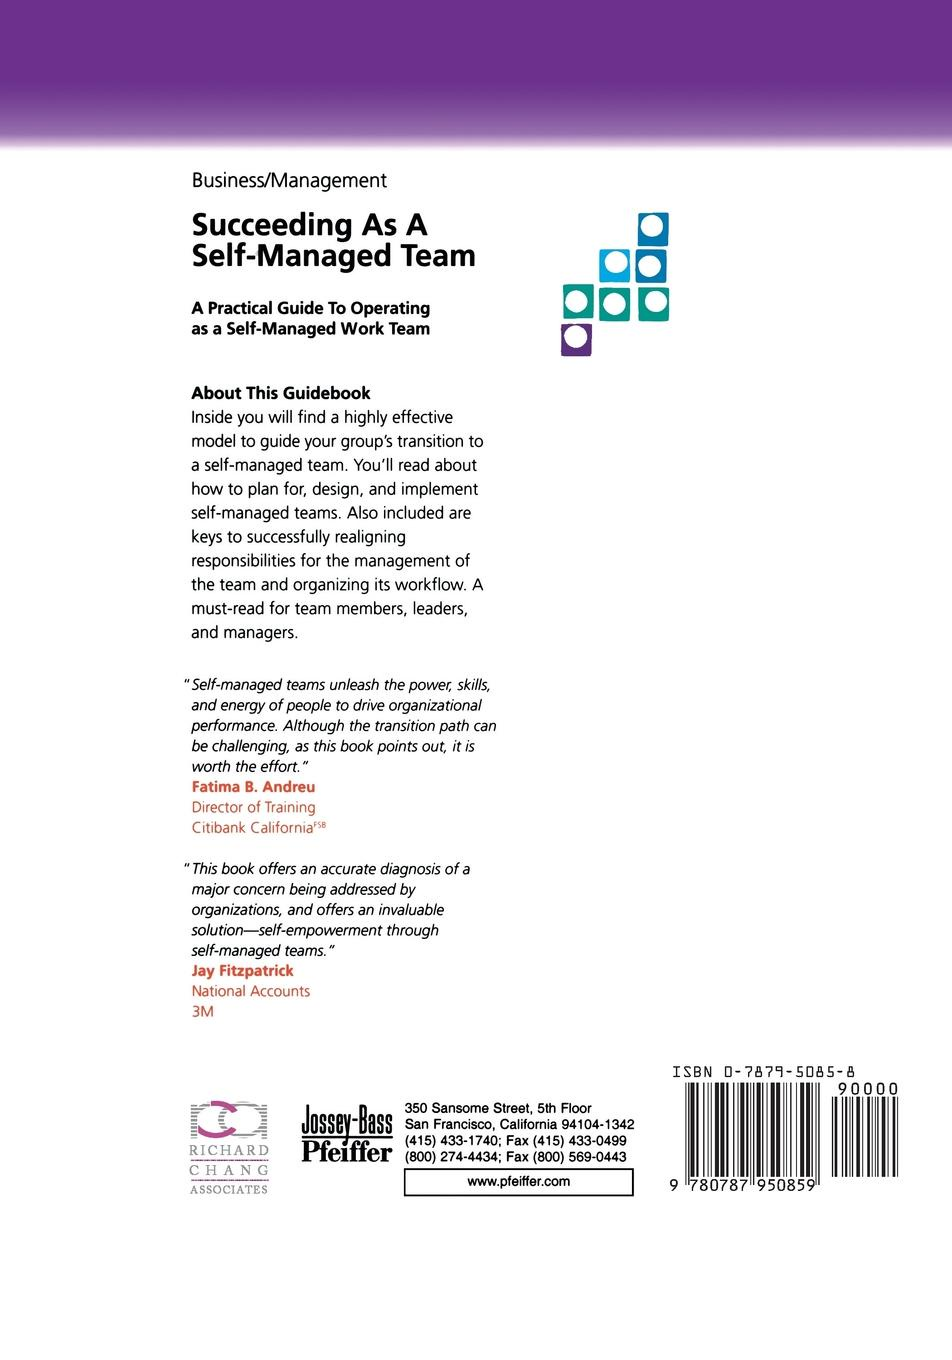 Richard Y. Chang, Mark J. Curtin Succeeding as a Self-Managed Team. A Practical Guide to Operating as a Self-Managed Work Team richard chang y the passion plan at work building a passion driven organization